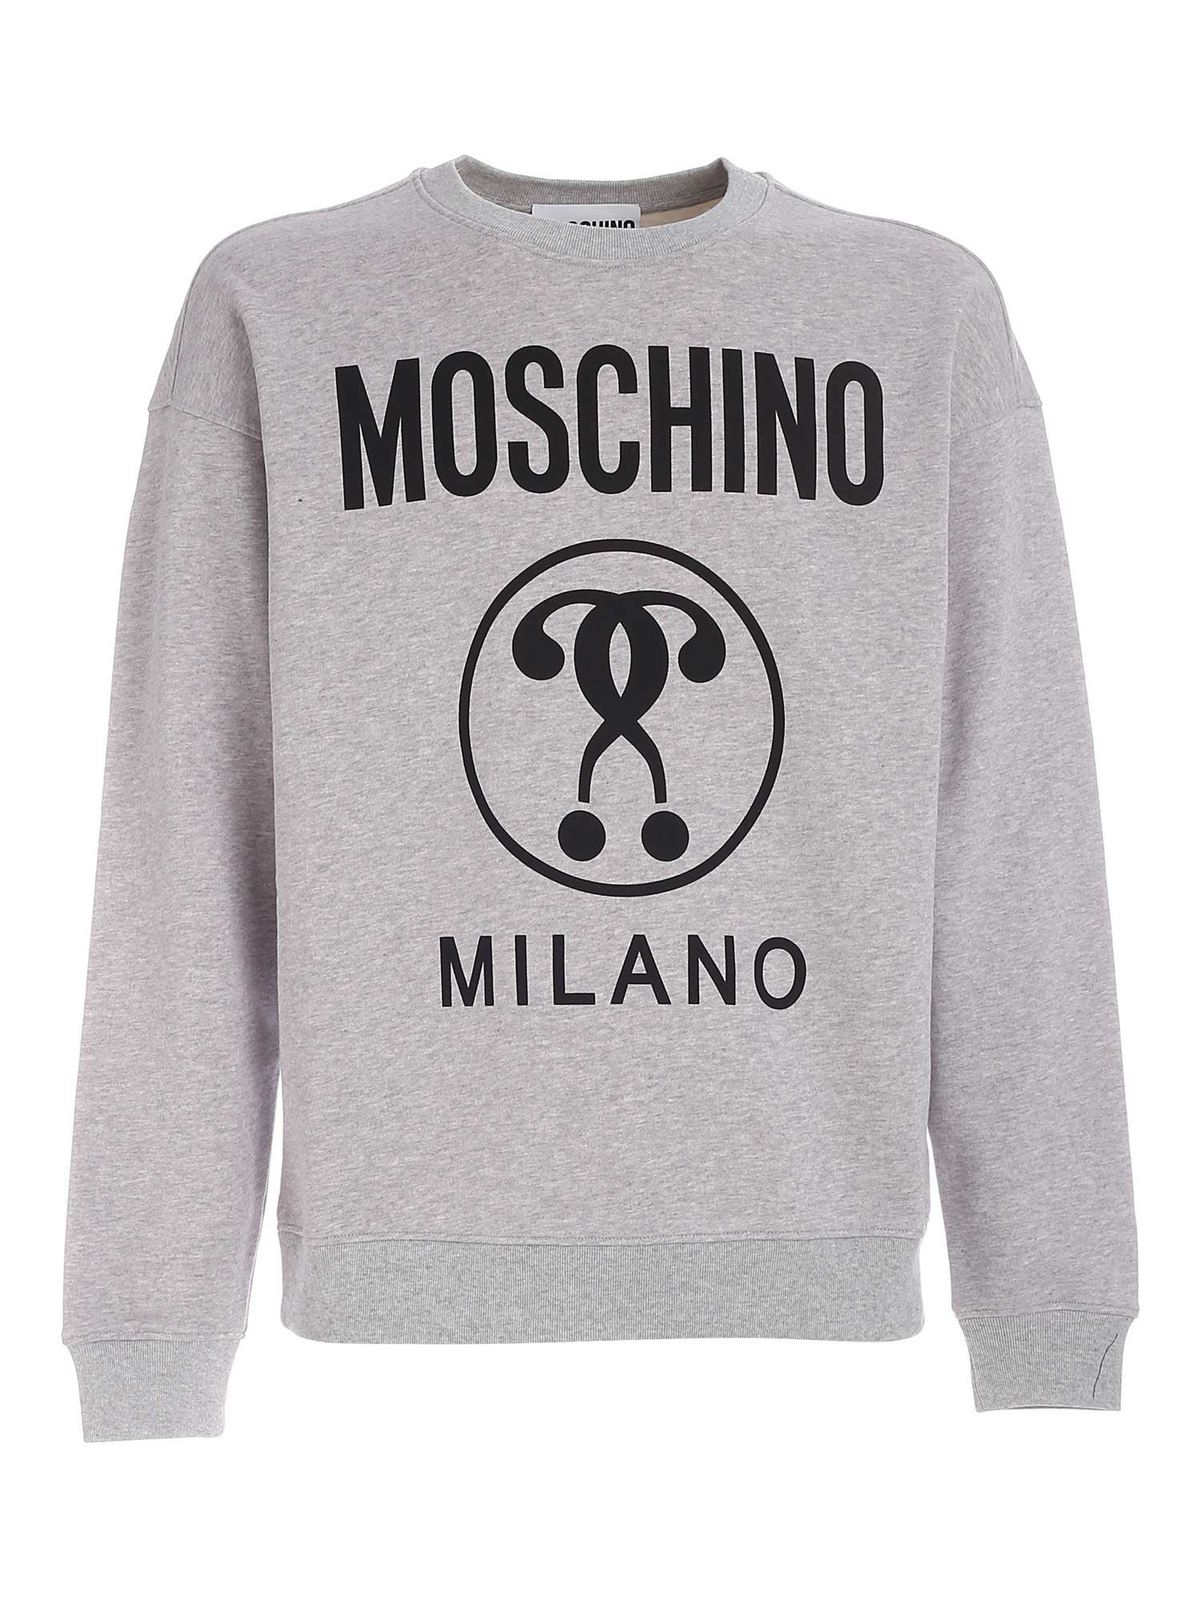 Moschino DOUBLE QUESTION MARK SWEATSHIRT IN GREY